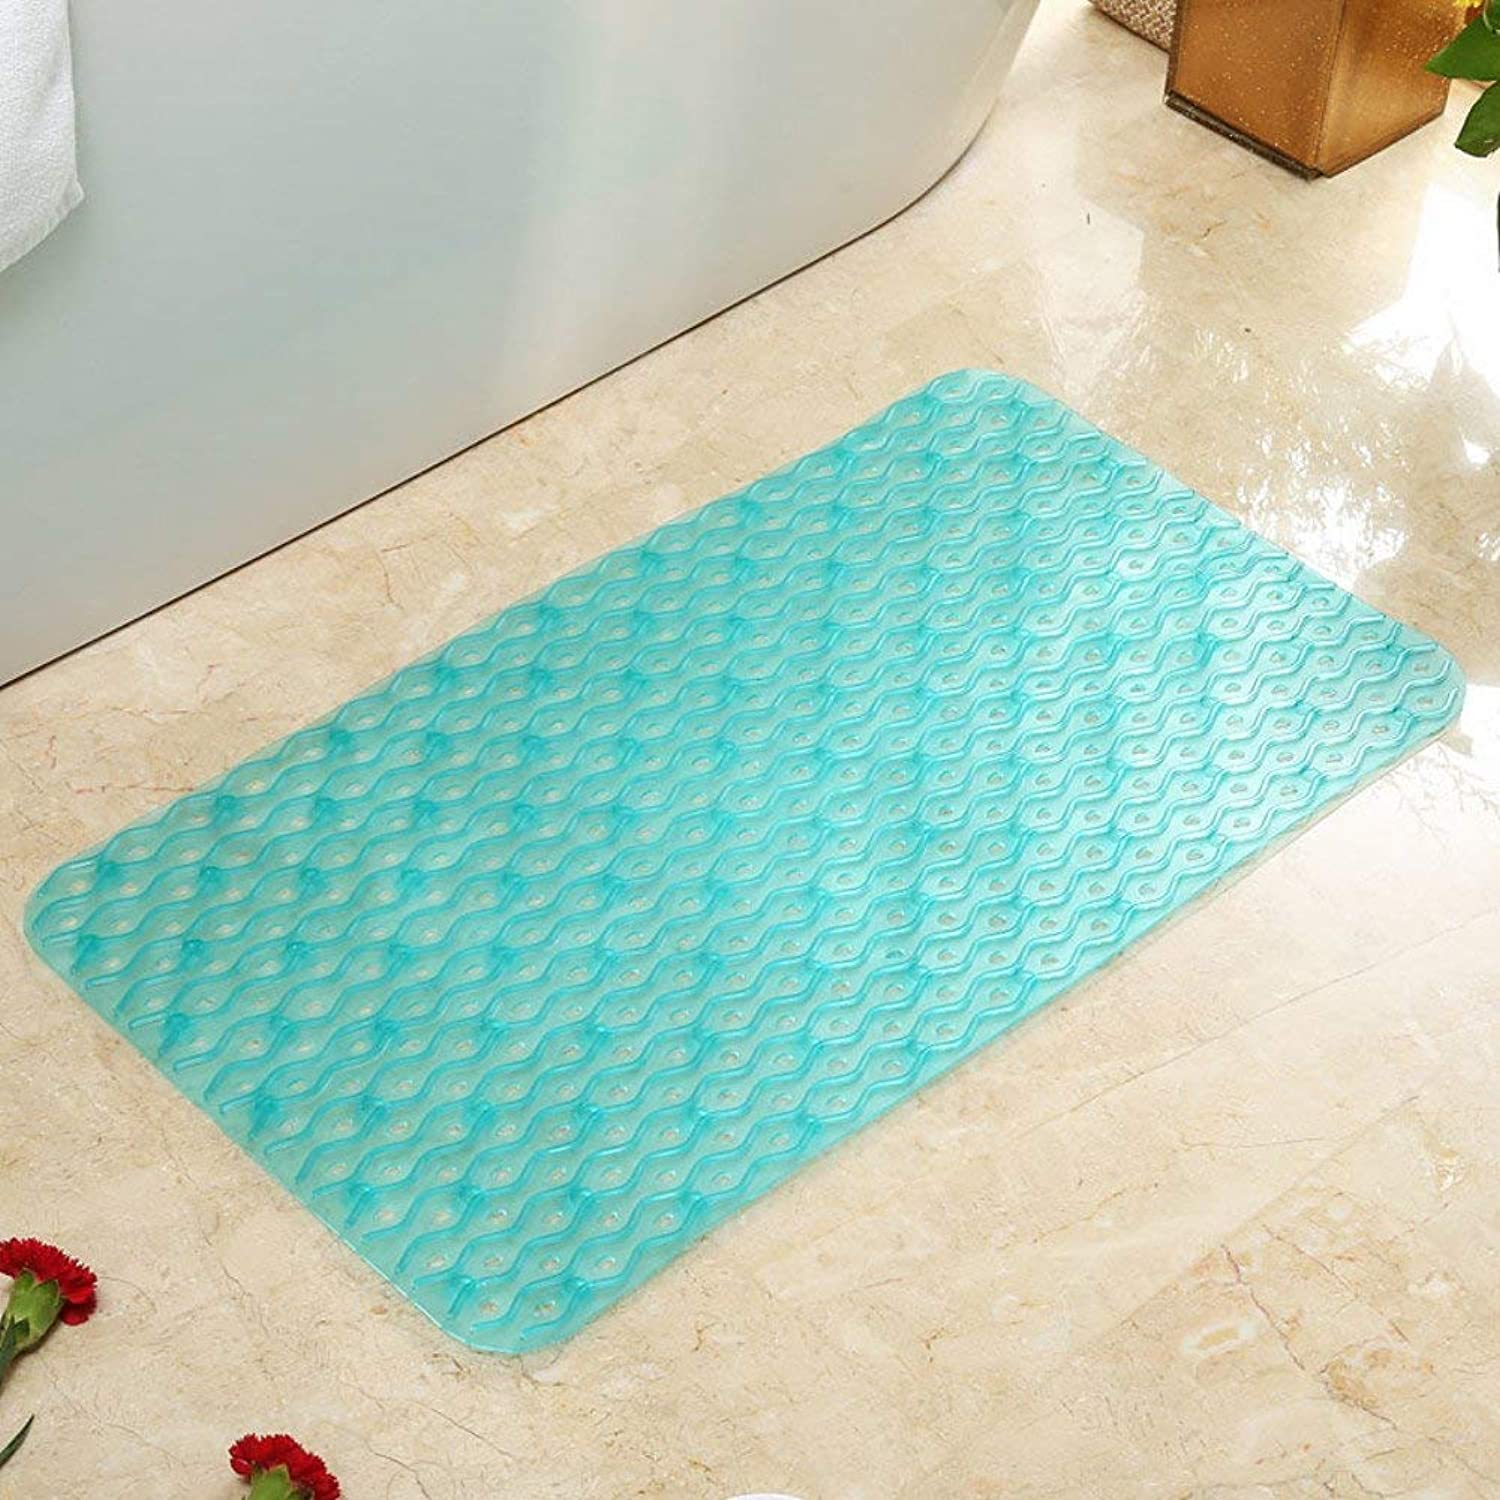 BDT Decorations - Carpet Floor Mats, Bathroom Non-Slip Absorbent Pad, Door Mat Foot Pad